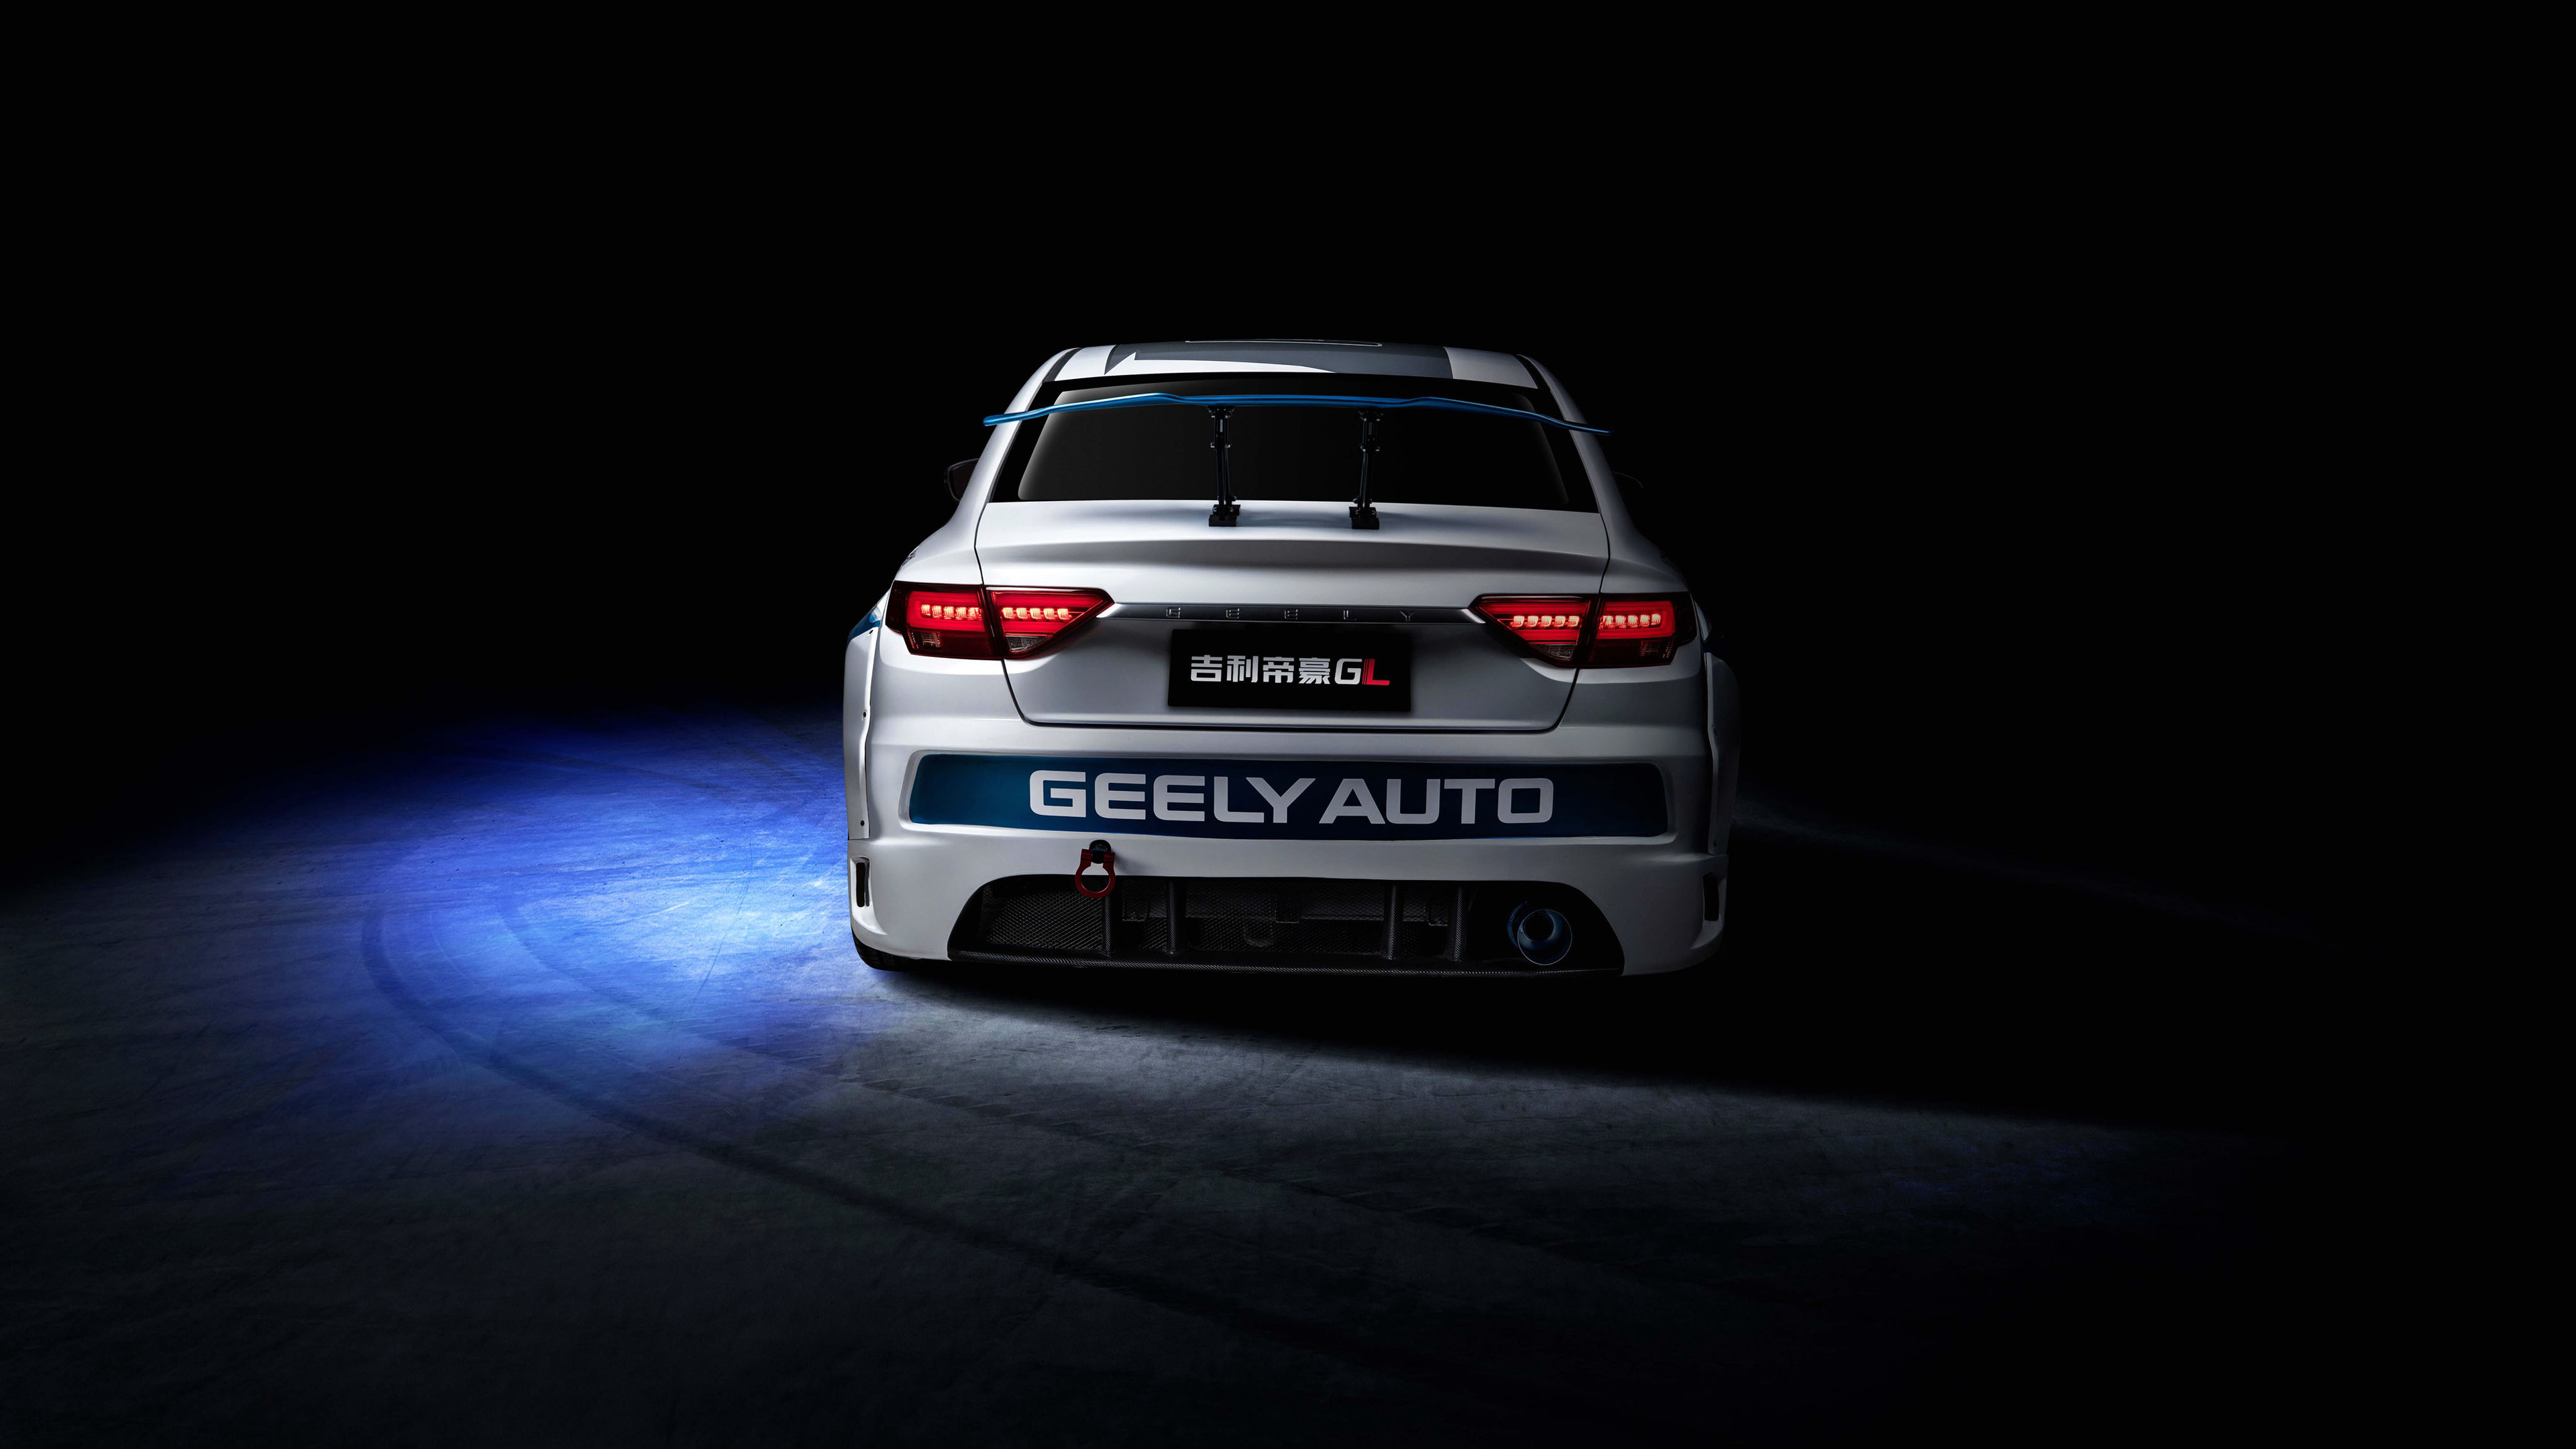 geely emgrand gl race car 2018 rear 1539111523 - Geely Emgrand GL Race Car 2018 Rear - hd-wallpapers, geely wallpapers, geely emgrand gl wallpapers, cars wallpapers, 4k-wallpapers, 2018 cars wallpapers